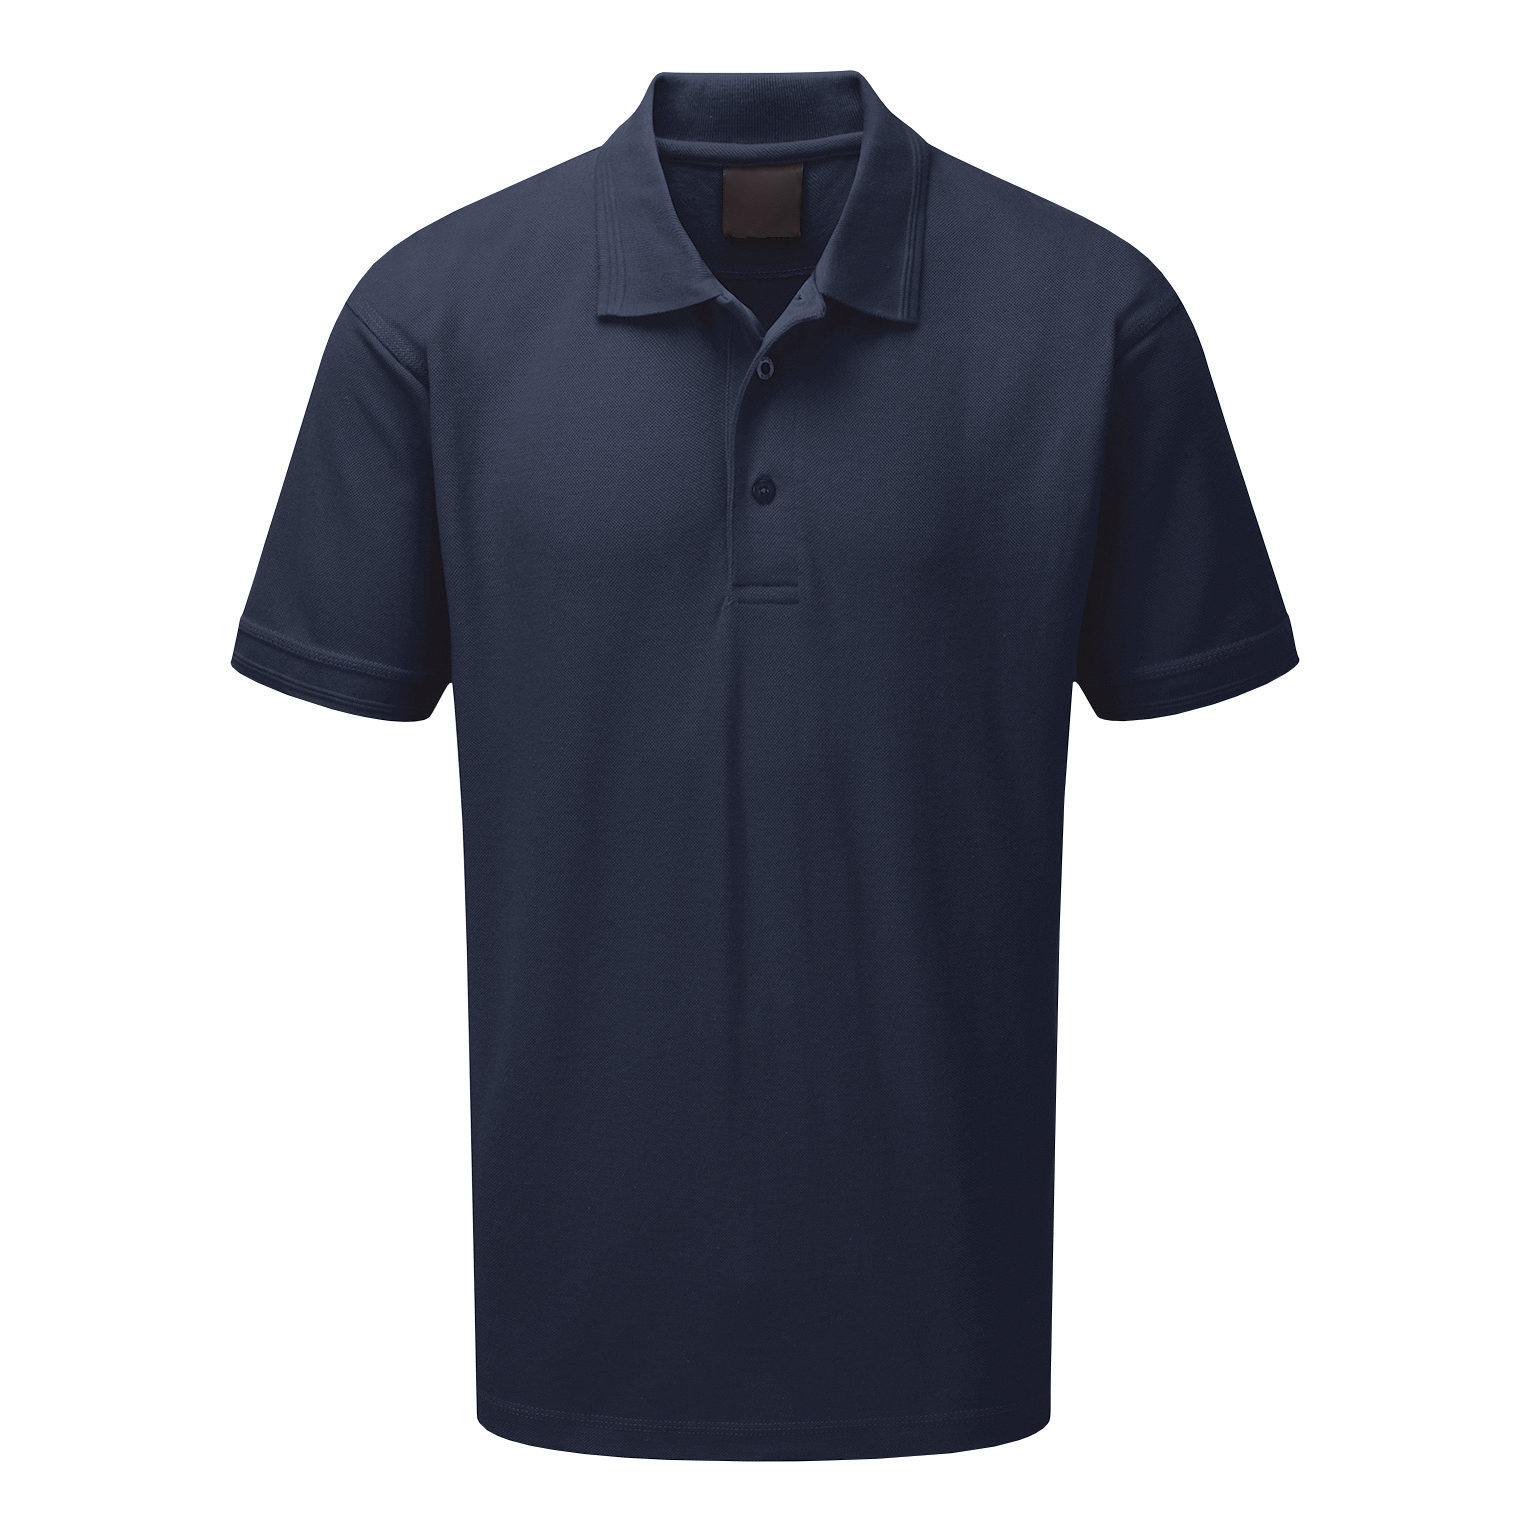 Click Workwear Polo Shirt Polycotton 200gsm Small Navy Blue Ref CLPKSNS 1-3 Days Lead Time